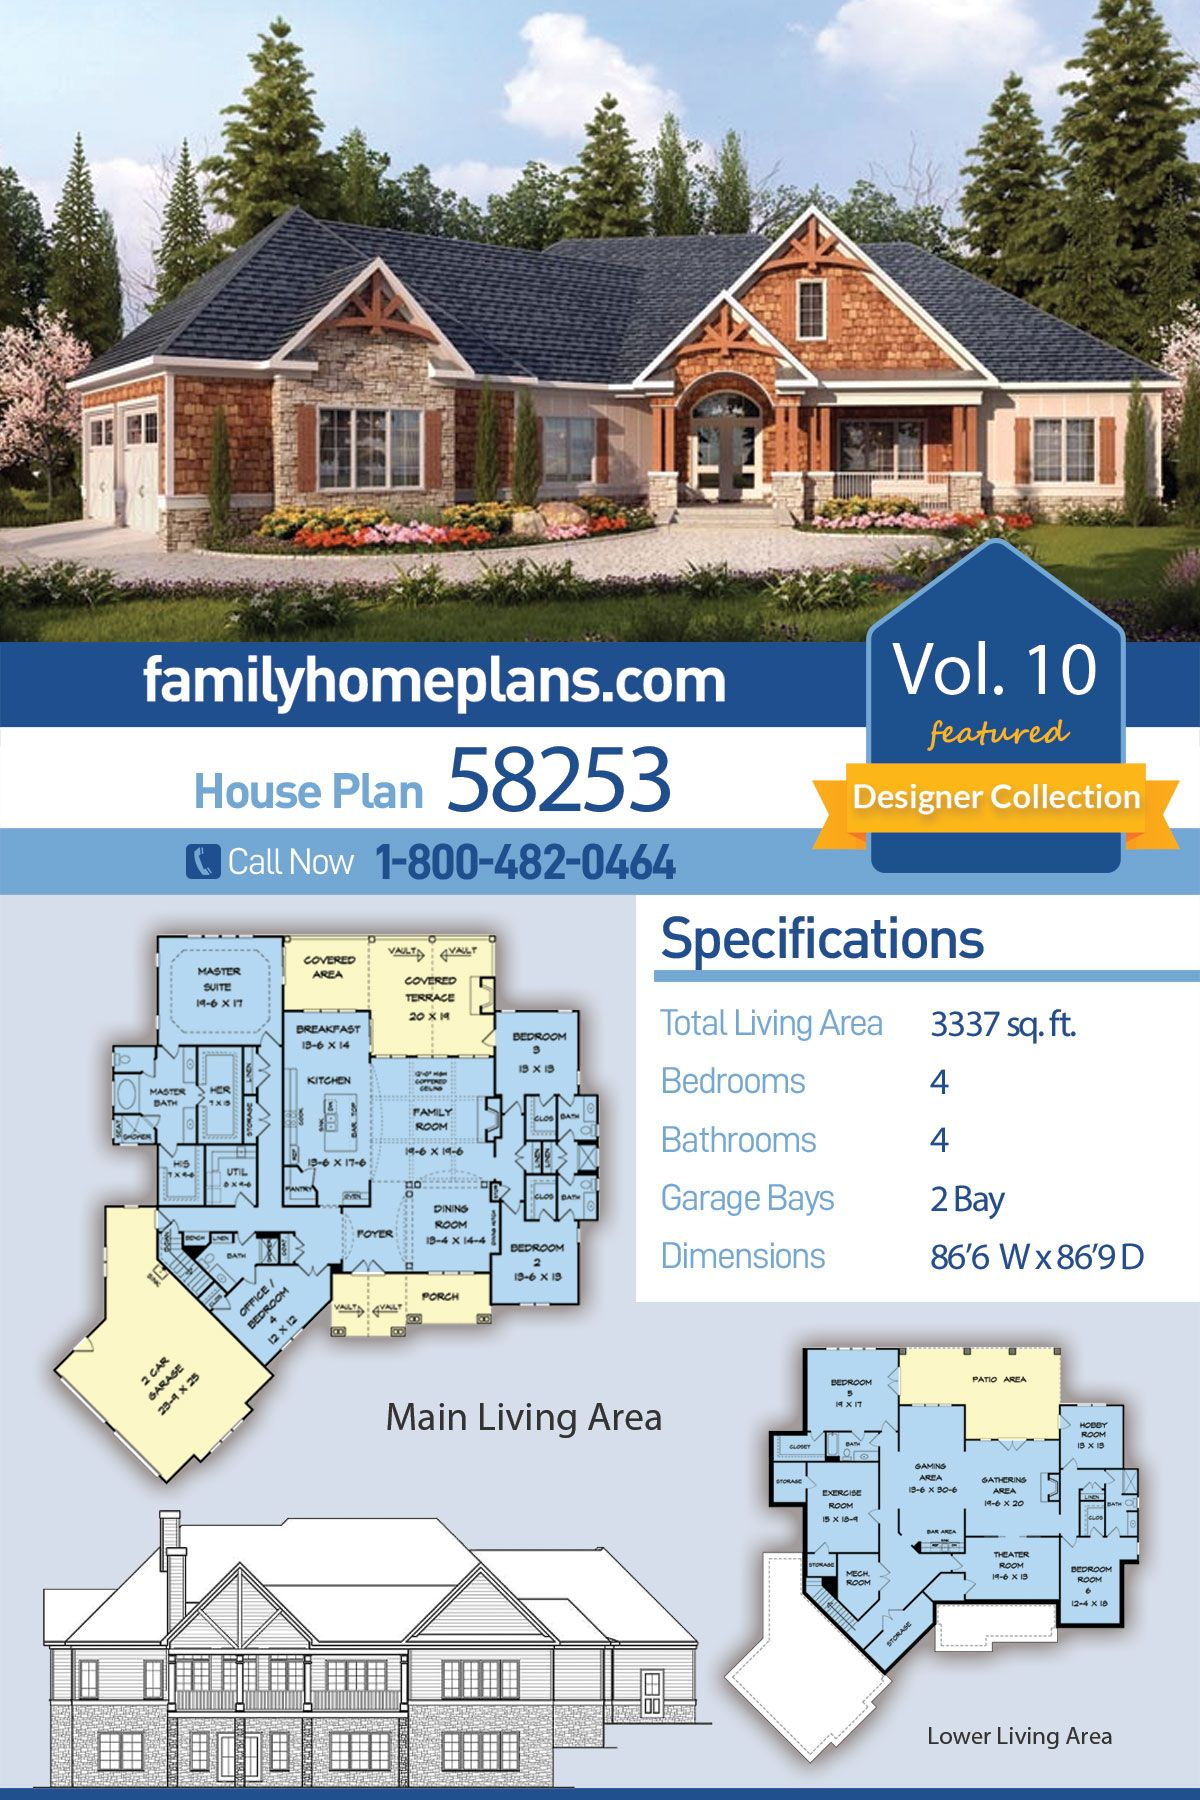 Craftsman Style House Plan 58253 With 4 Bed 4 Bath 2 Car Garage House Plans Craftsman Style House Plans Craftsman House Plan